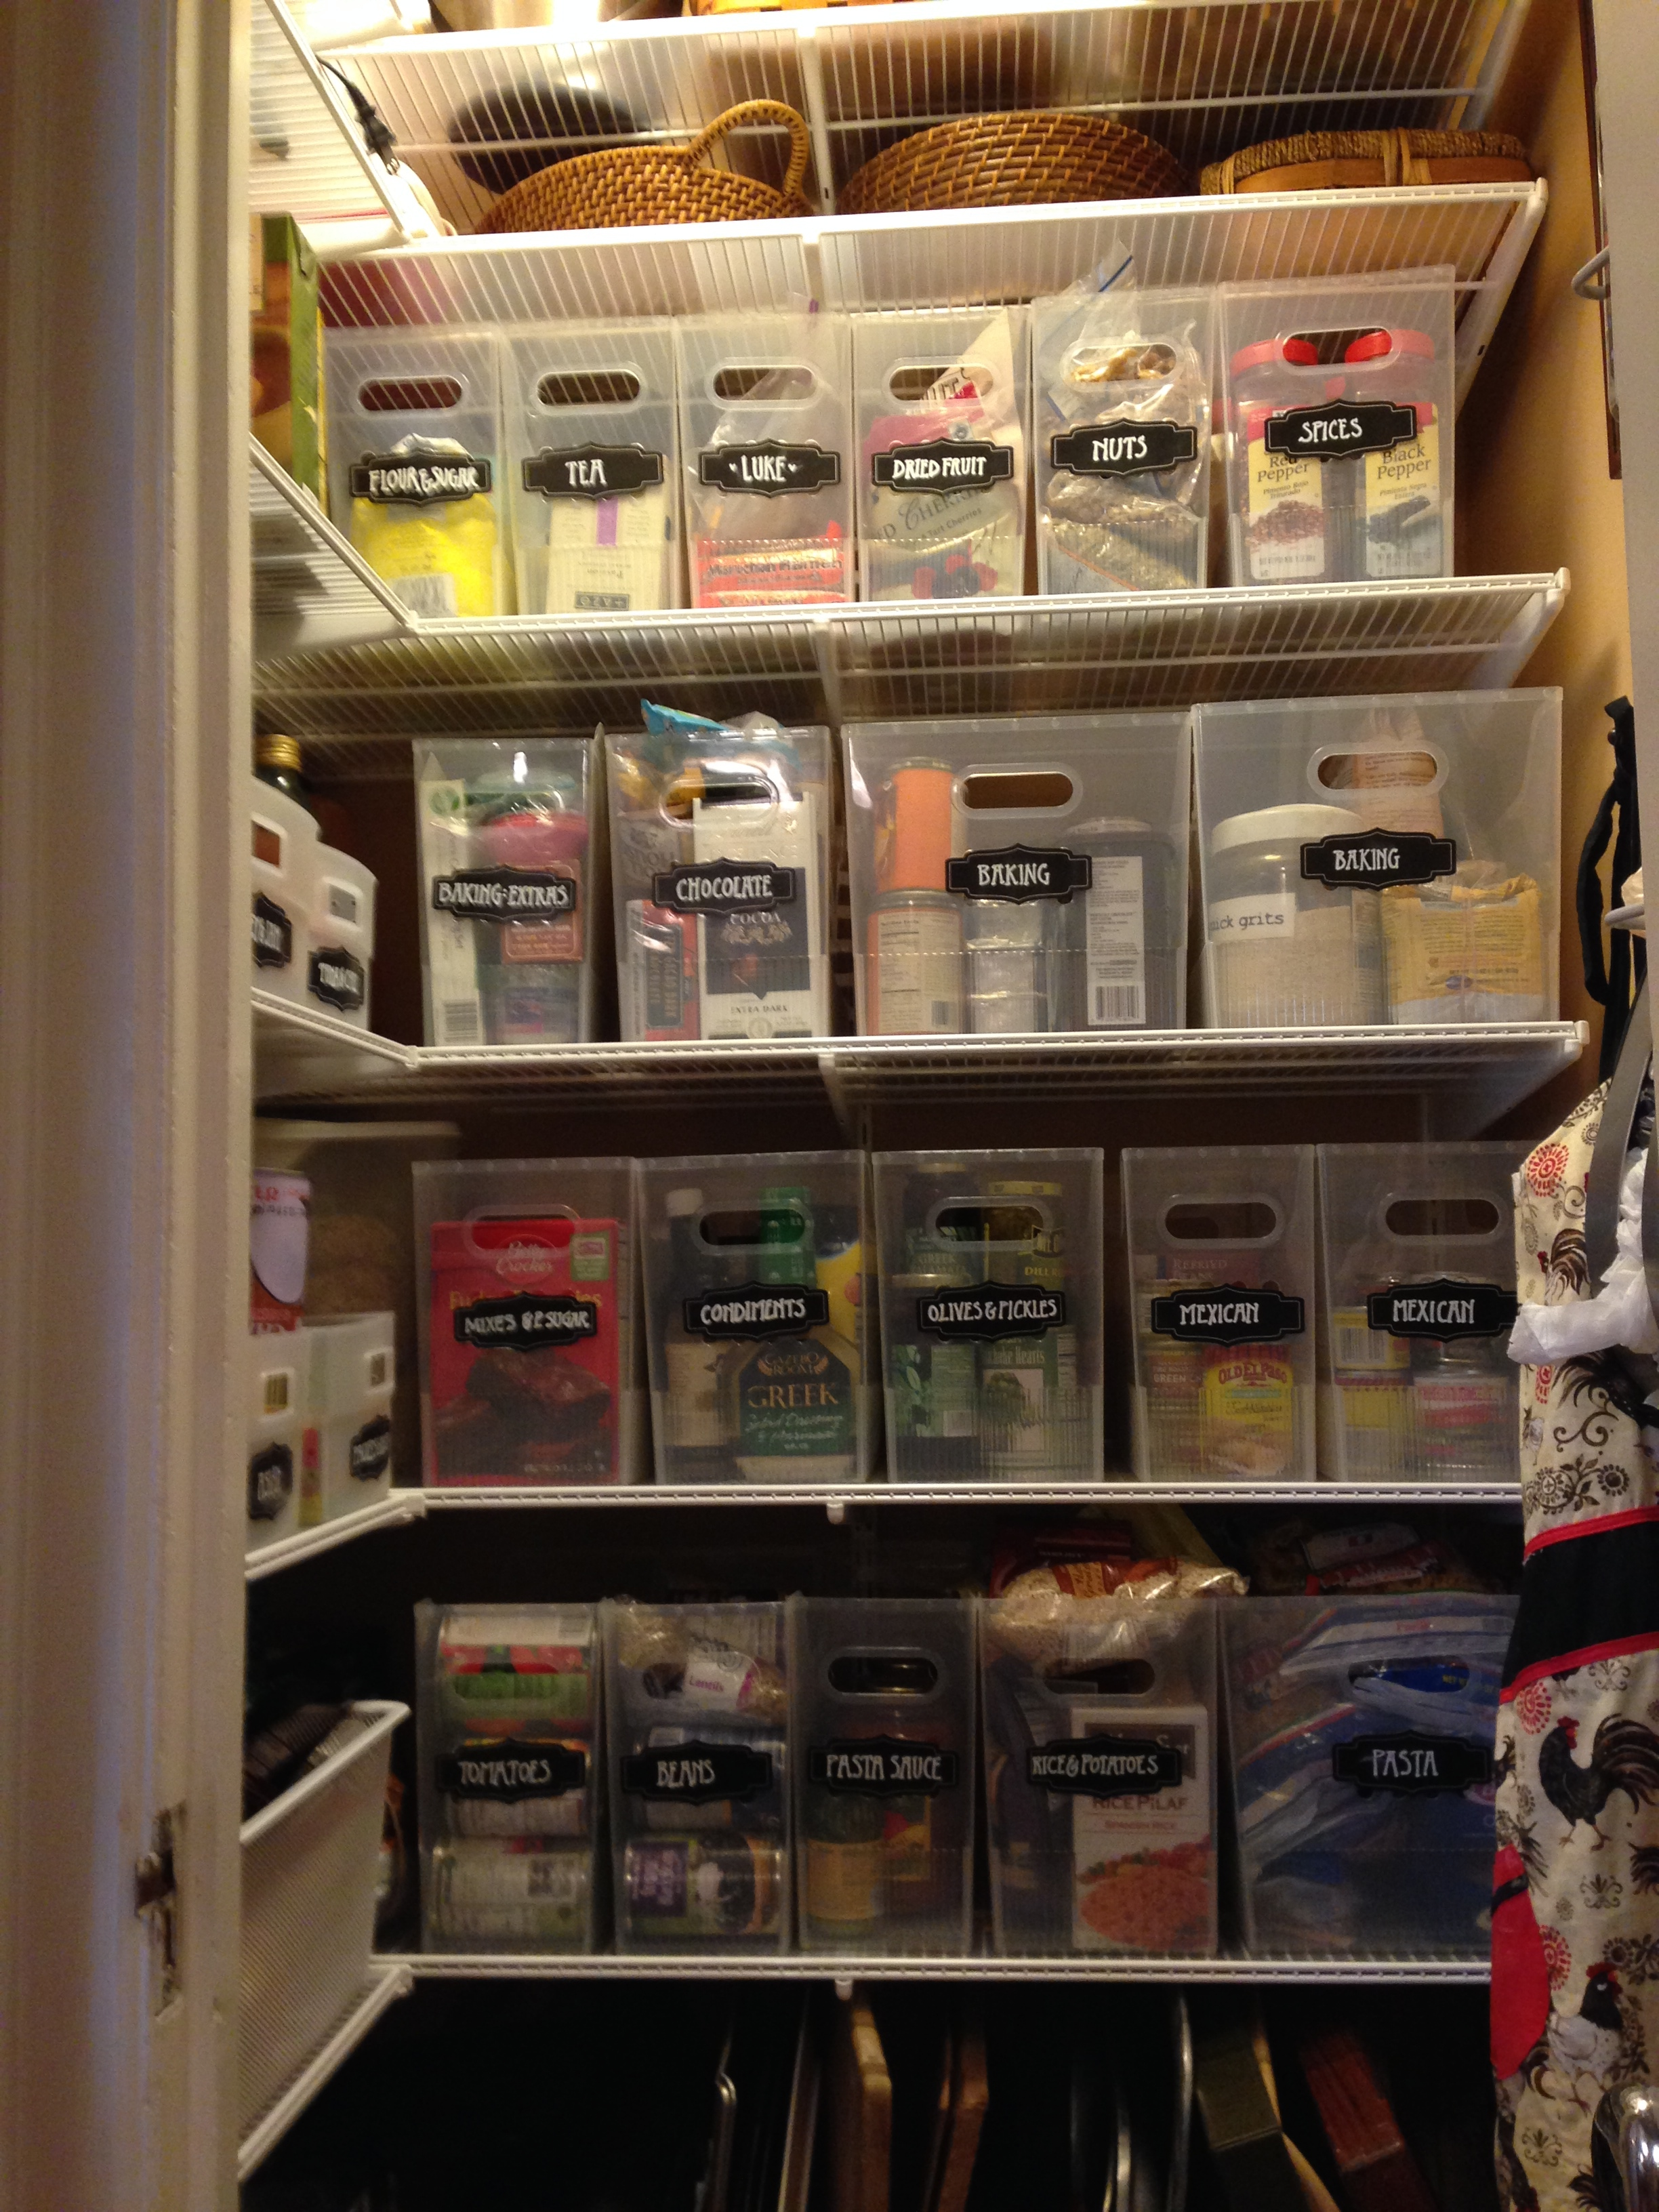 The finished pantry makes it super simple to find anything we need.